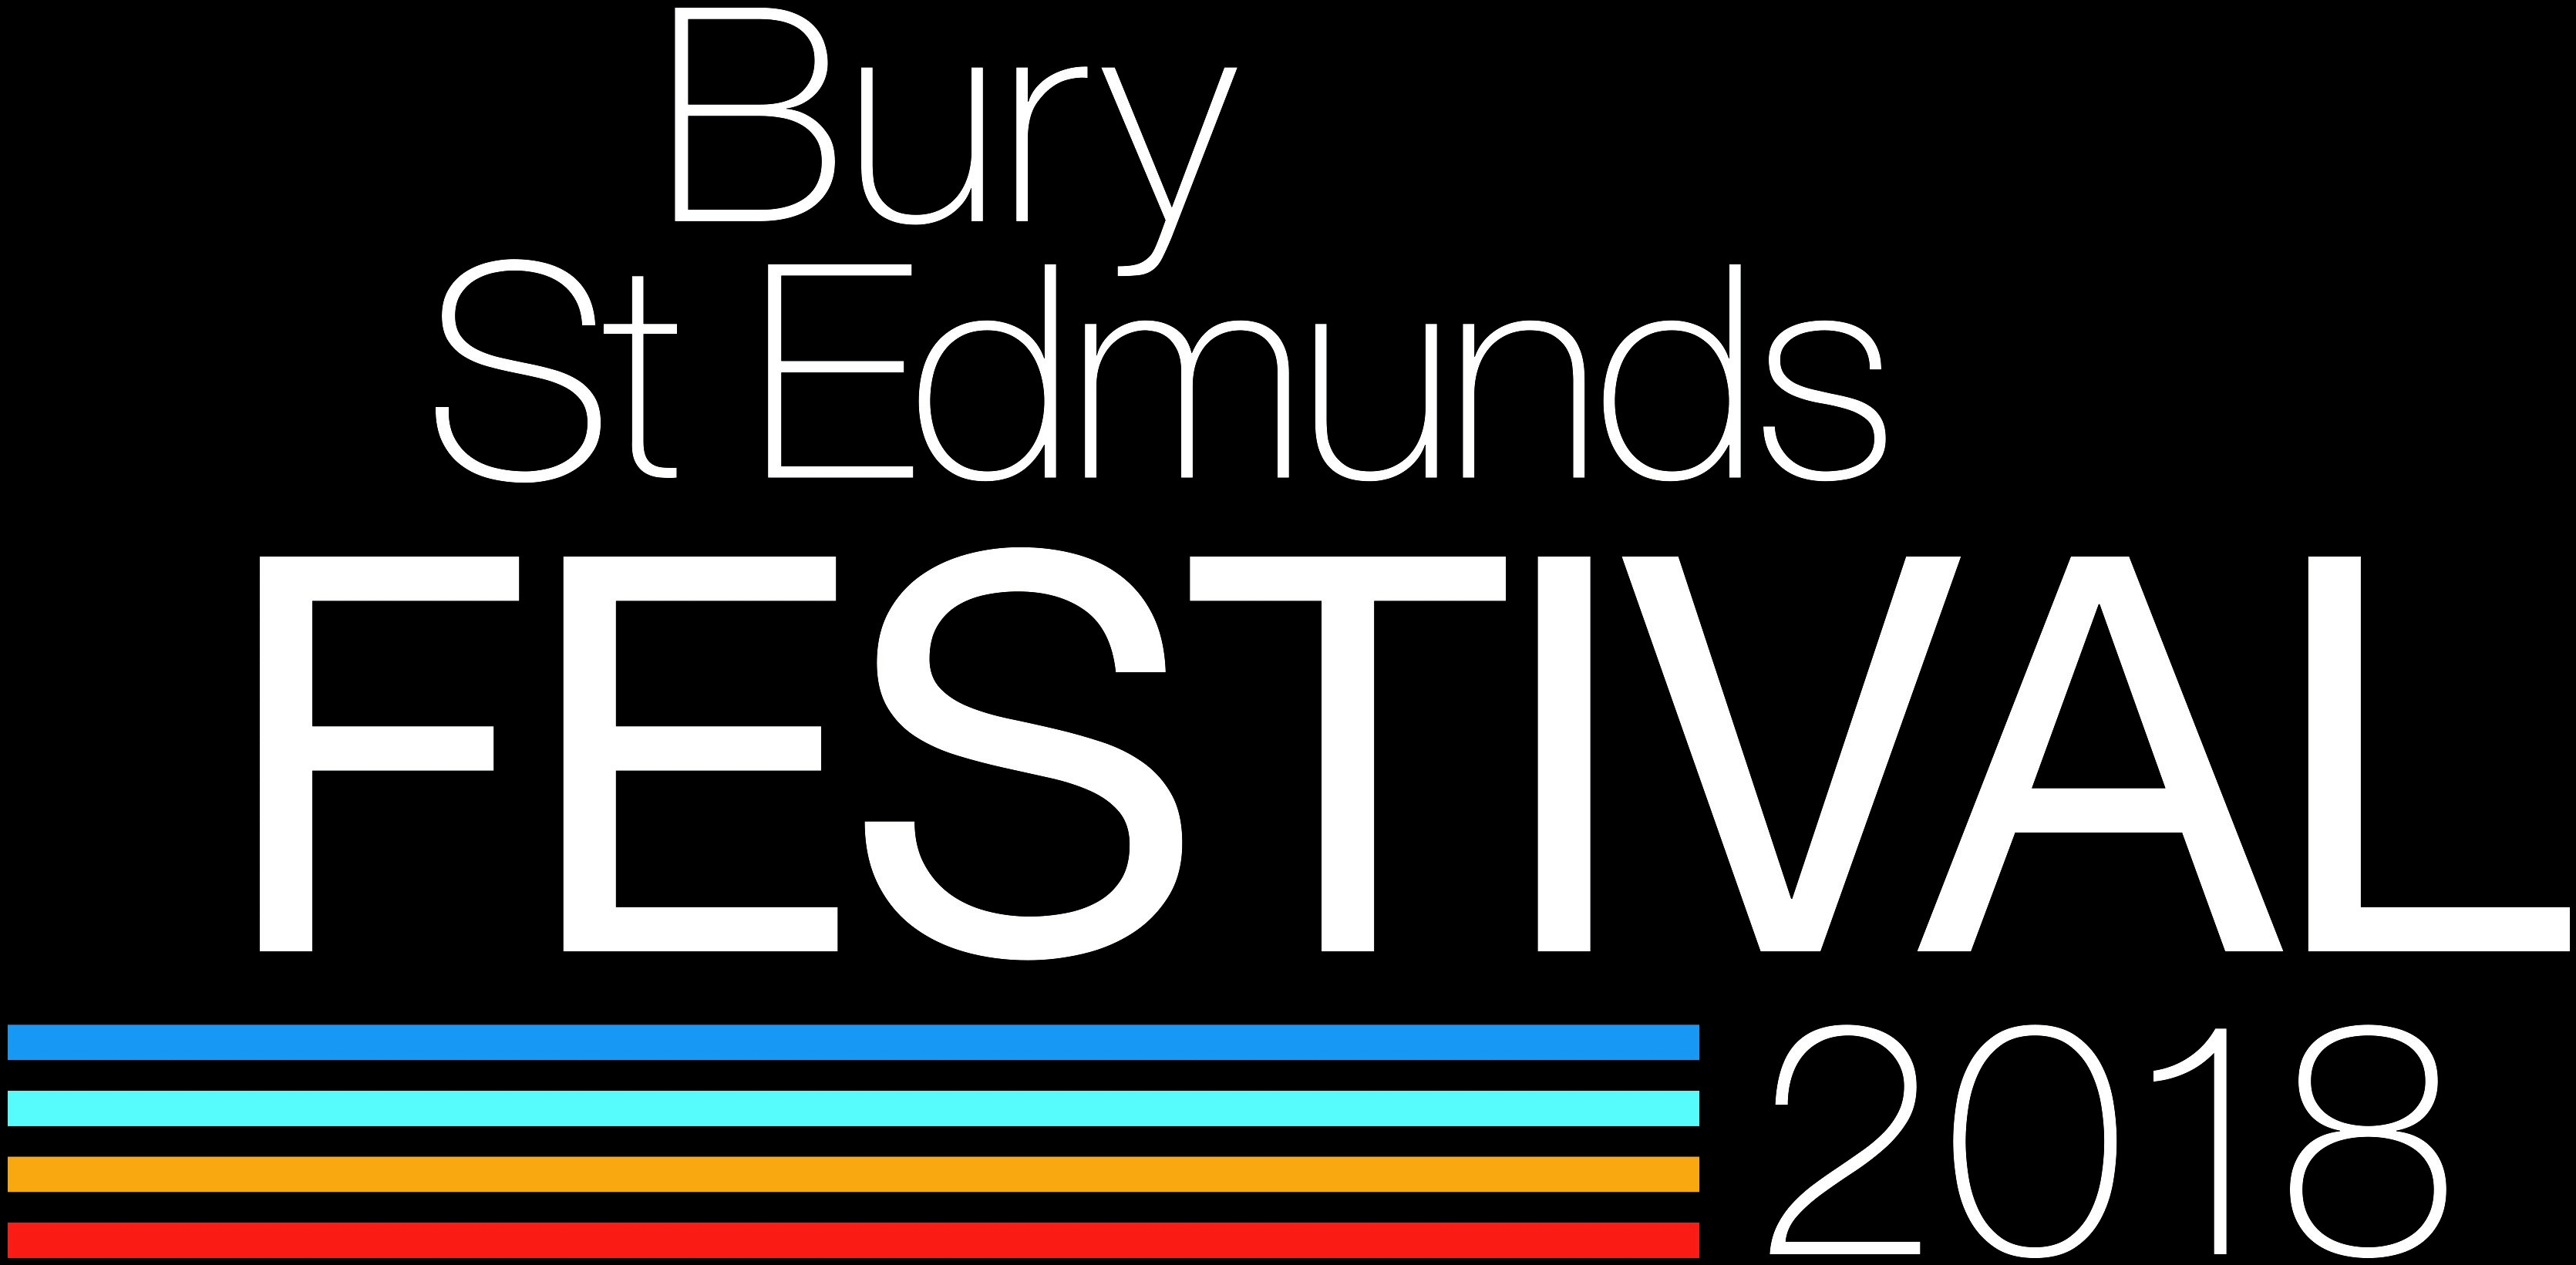 Win Bury St Edmunds Festival Tickets to See ABBA Mania